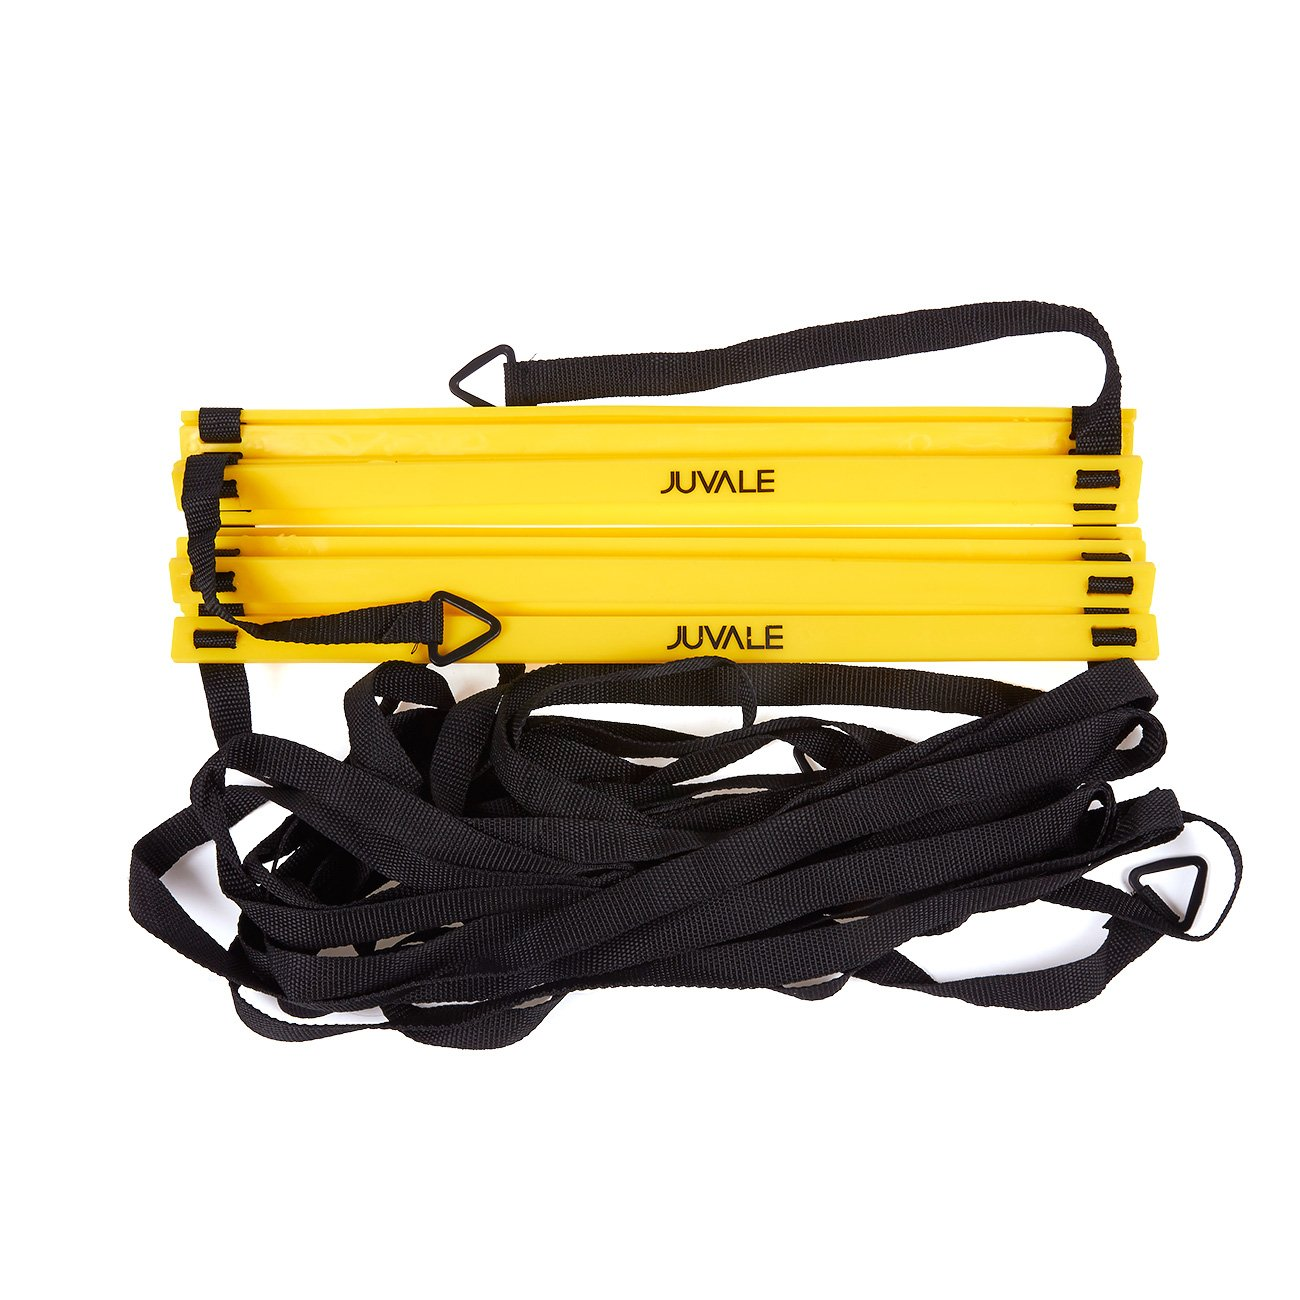 Speed and Agility Training Set - Includes Agility Ladder, 6 Disc Cones, Resistance Parachute, 4 Steel Stakes and a Drawstring Bag - For Speed, Coordination, Footwork, Explosiveness, Black, Yellow by Juvale (Image #1)